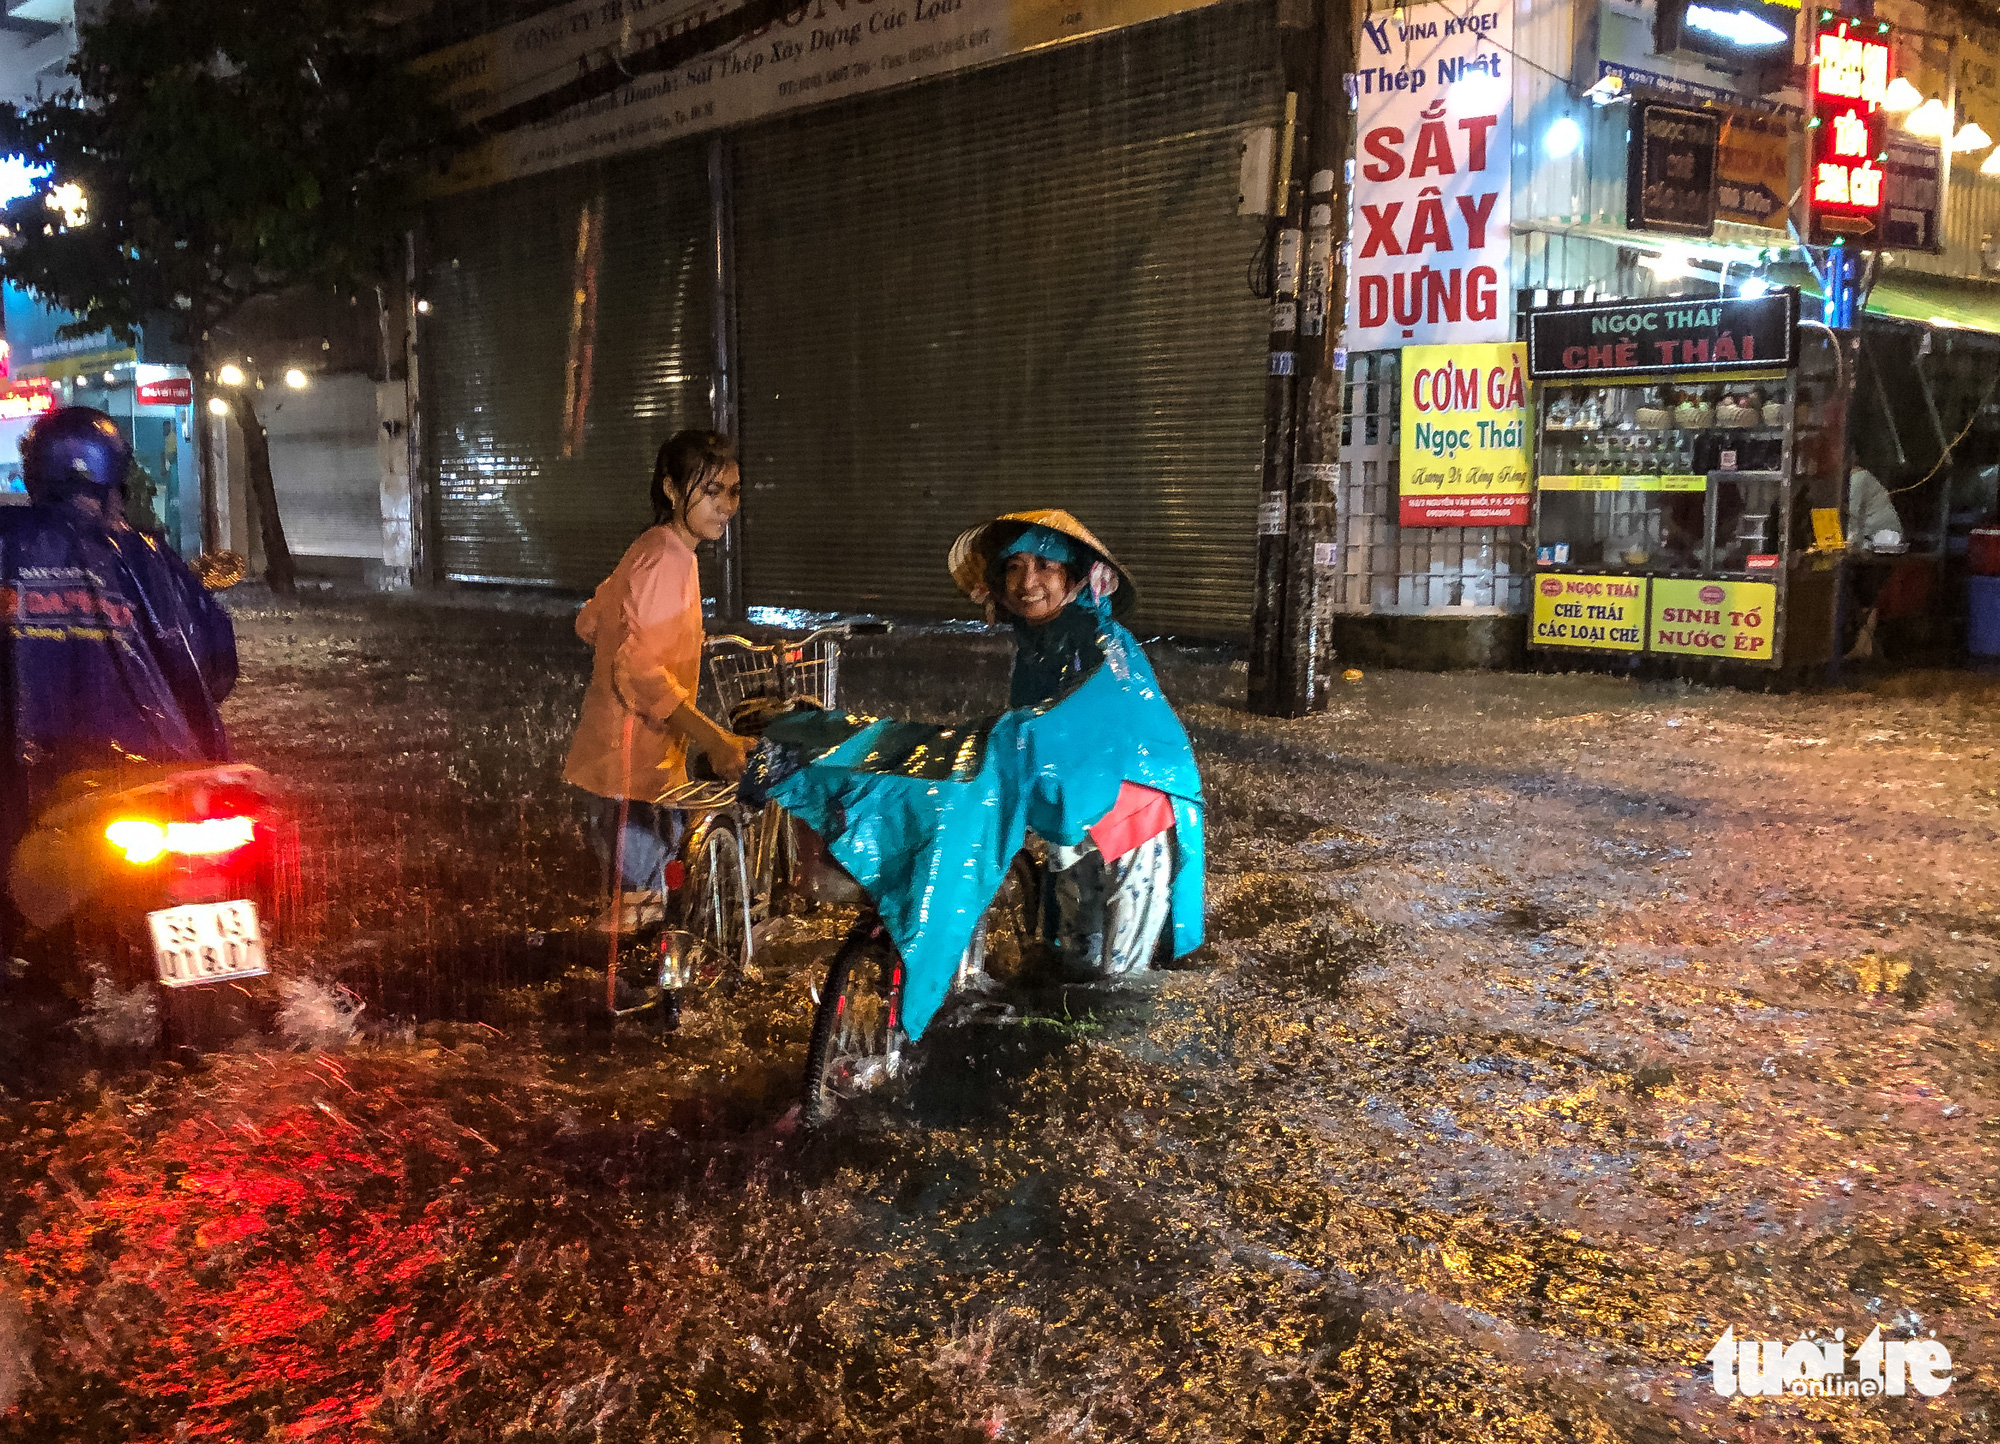 Commuters have a hard time traveling on a flooded street in a heavy downpour in Ho Chi Minh City, October 31, 2020. Photo: Chau Tuan / Tuoi Tre